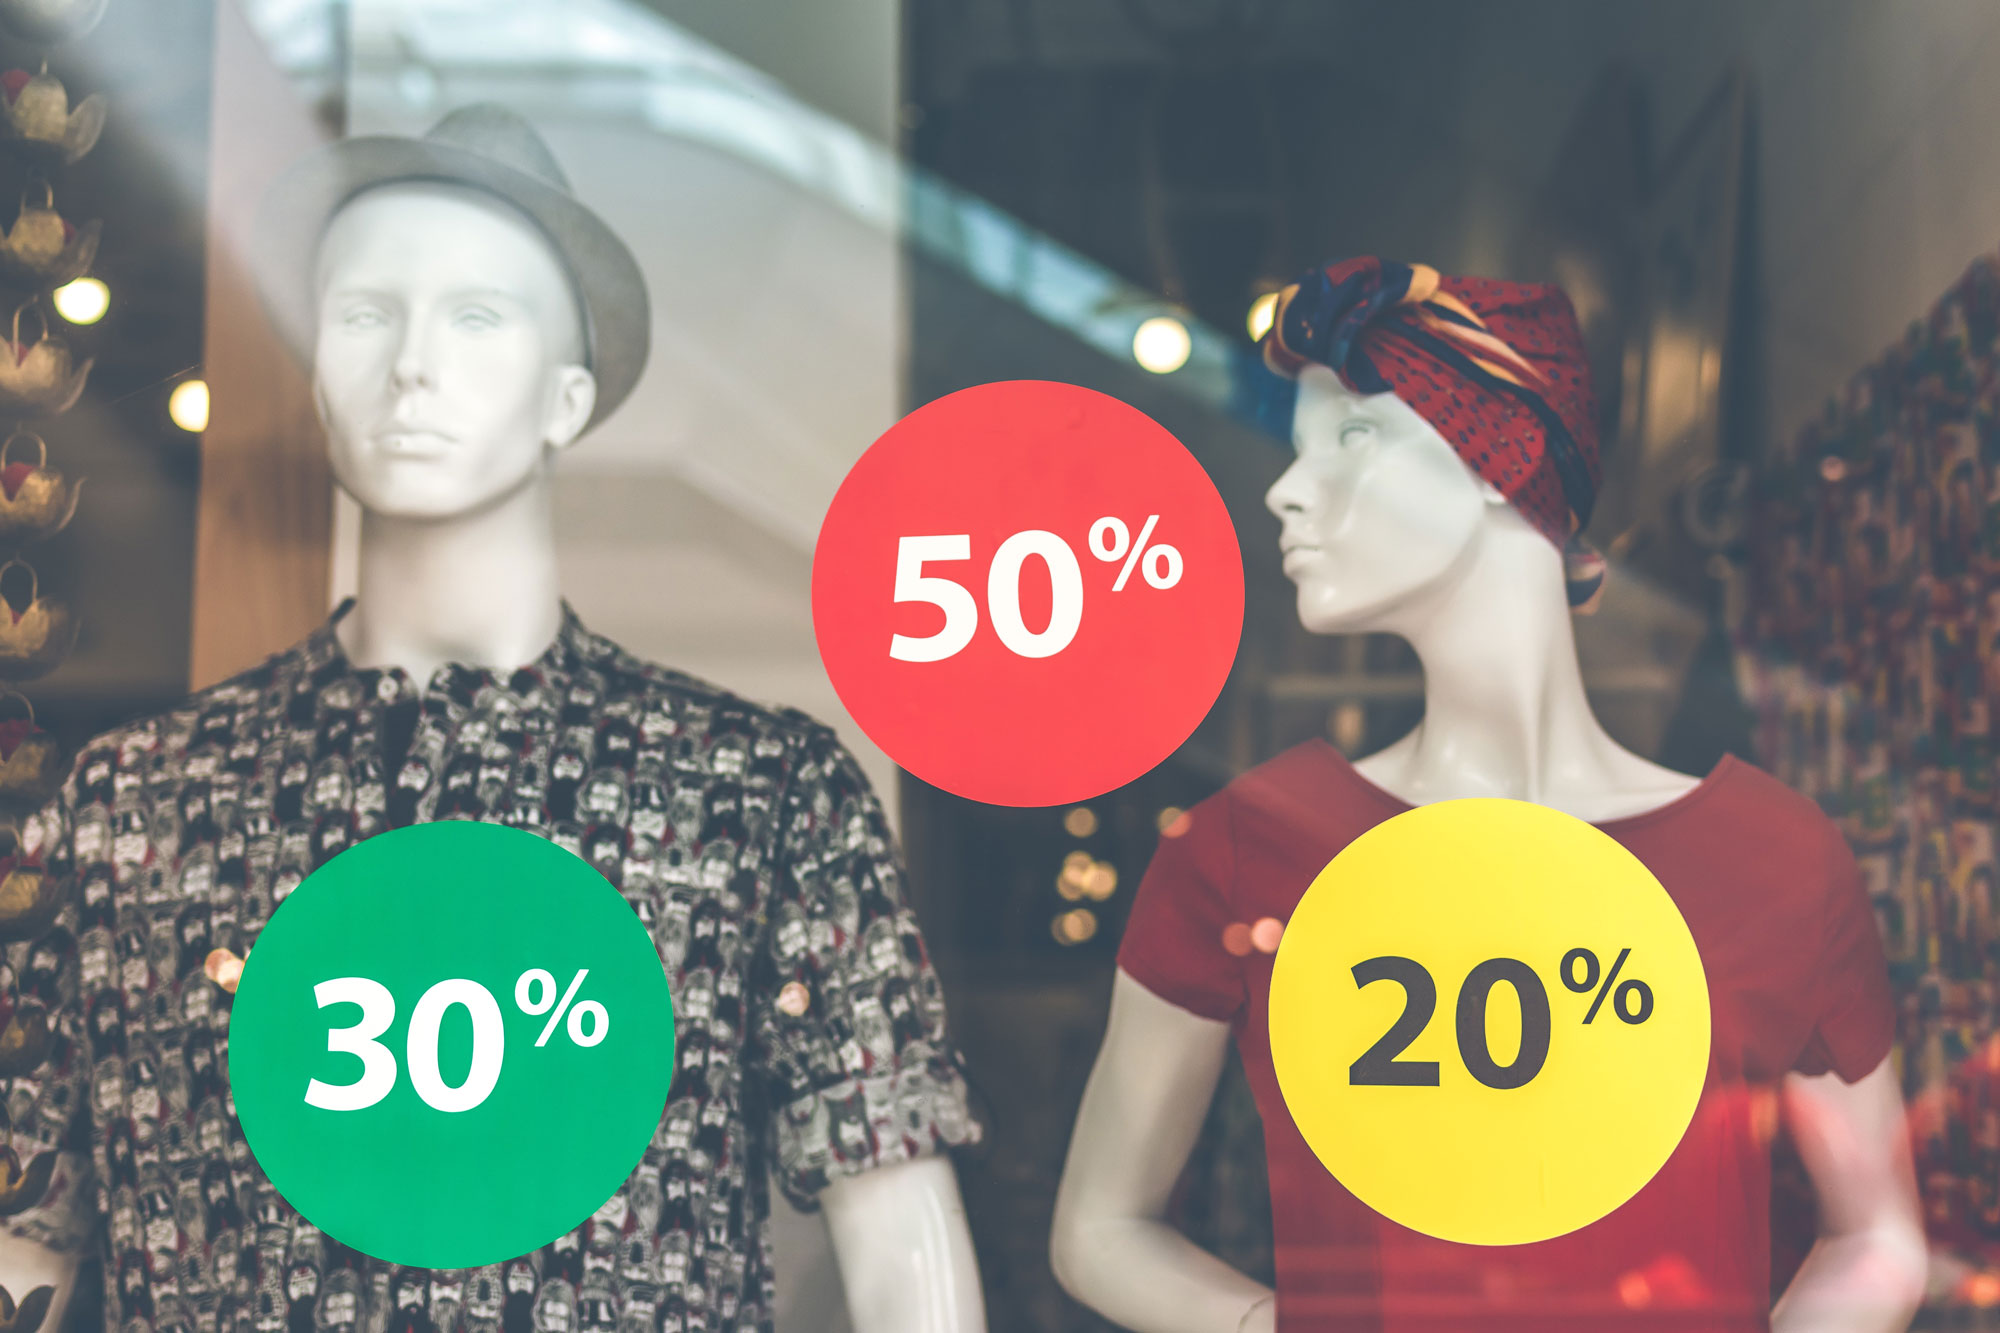 shopping-discounts-in-store.jpg